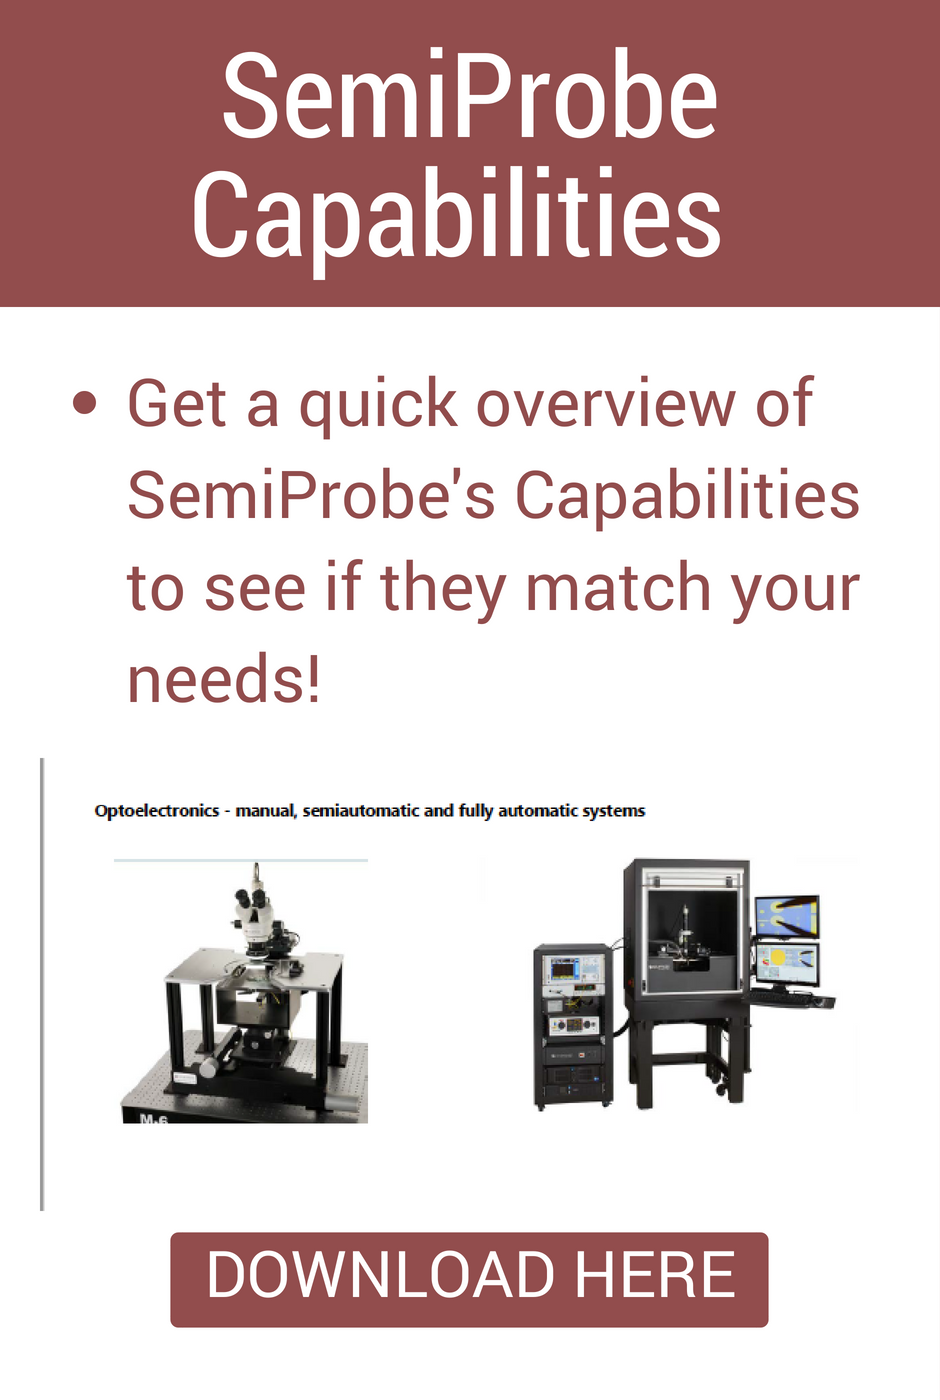 SemiProbe Capabilities & Applications Guide for Wafer Characterization & Testing